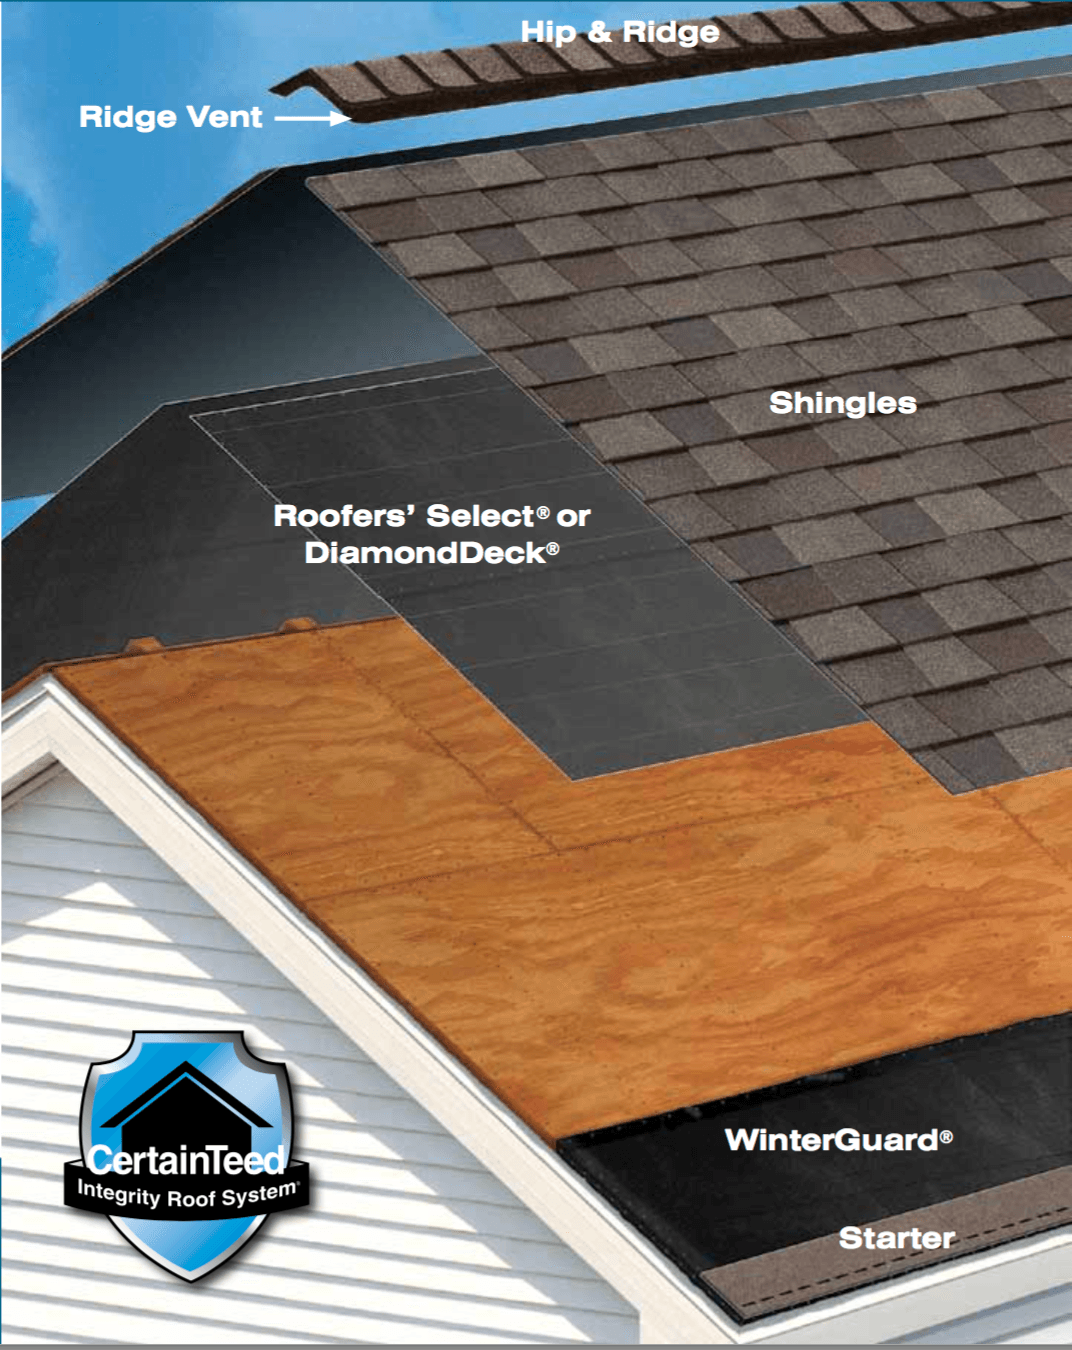 Roof cutaway: starter, winterguard, diamonddeck, shingles, ridge vent, hip & ridge